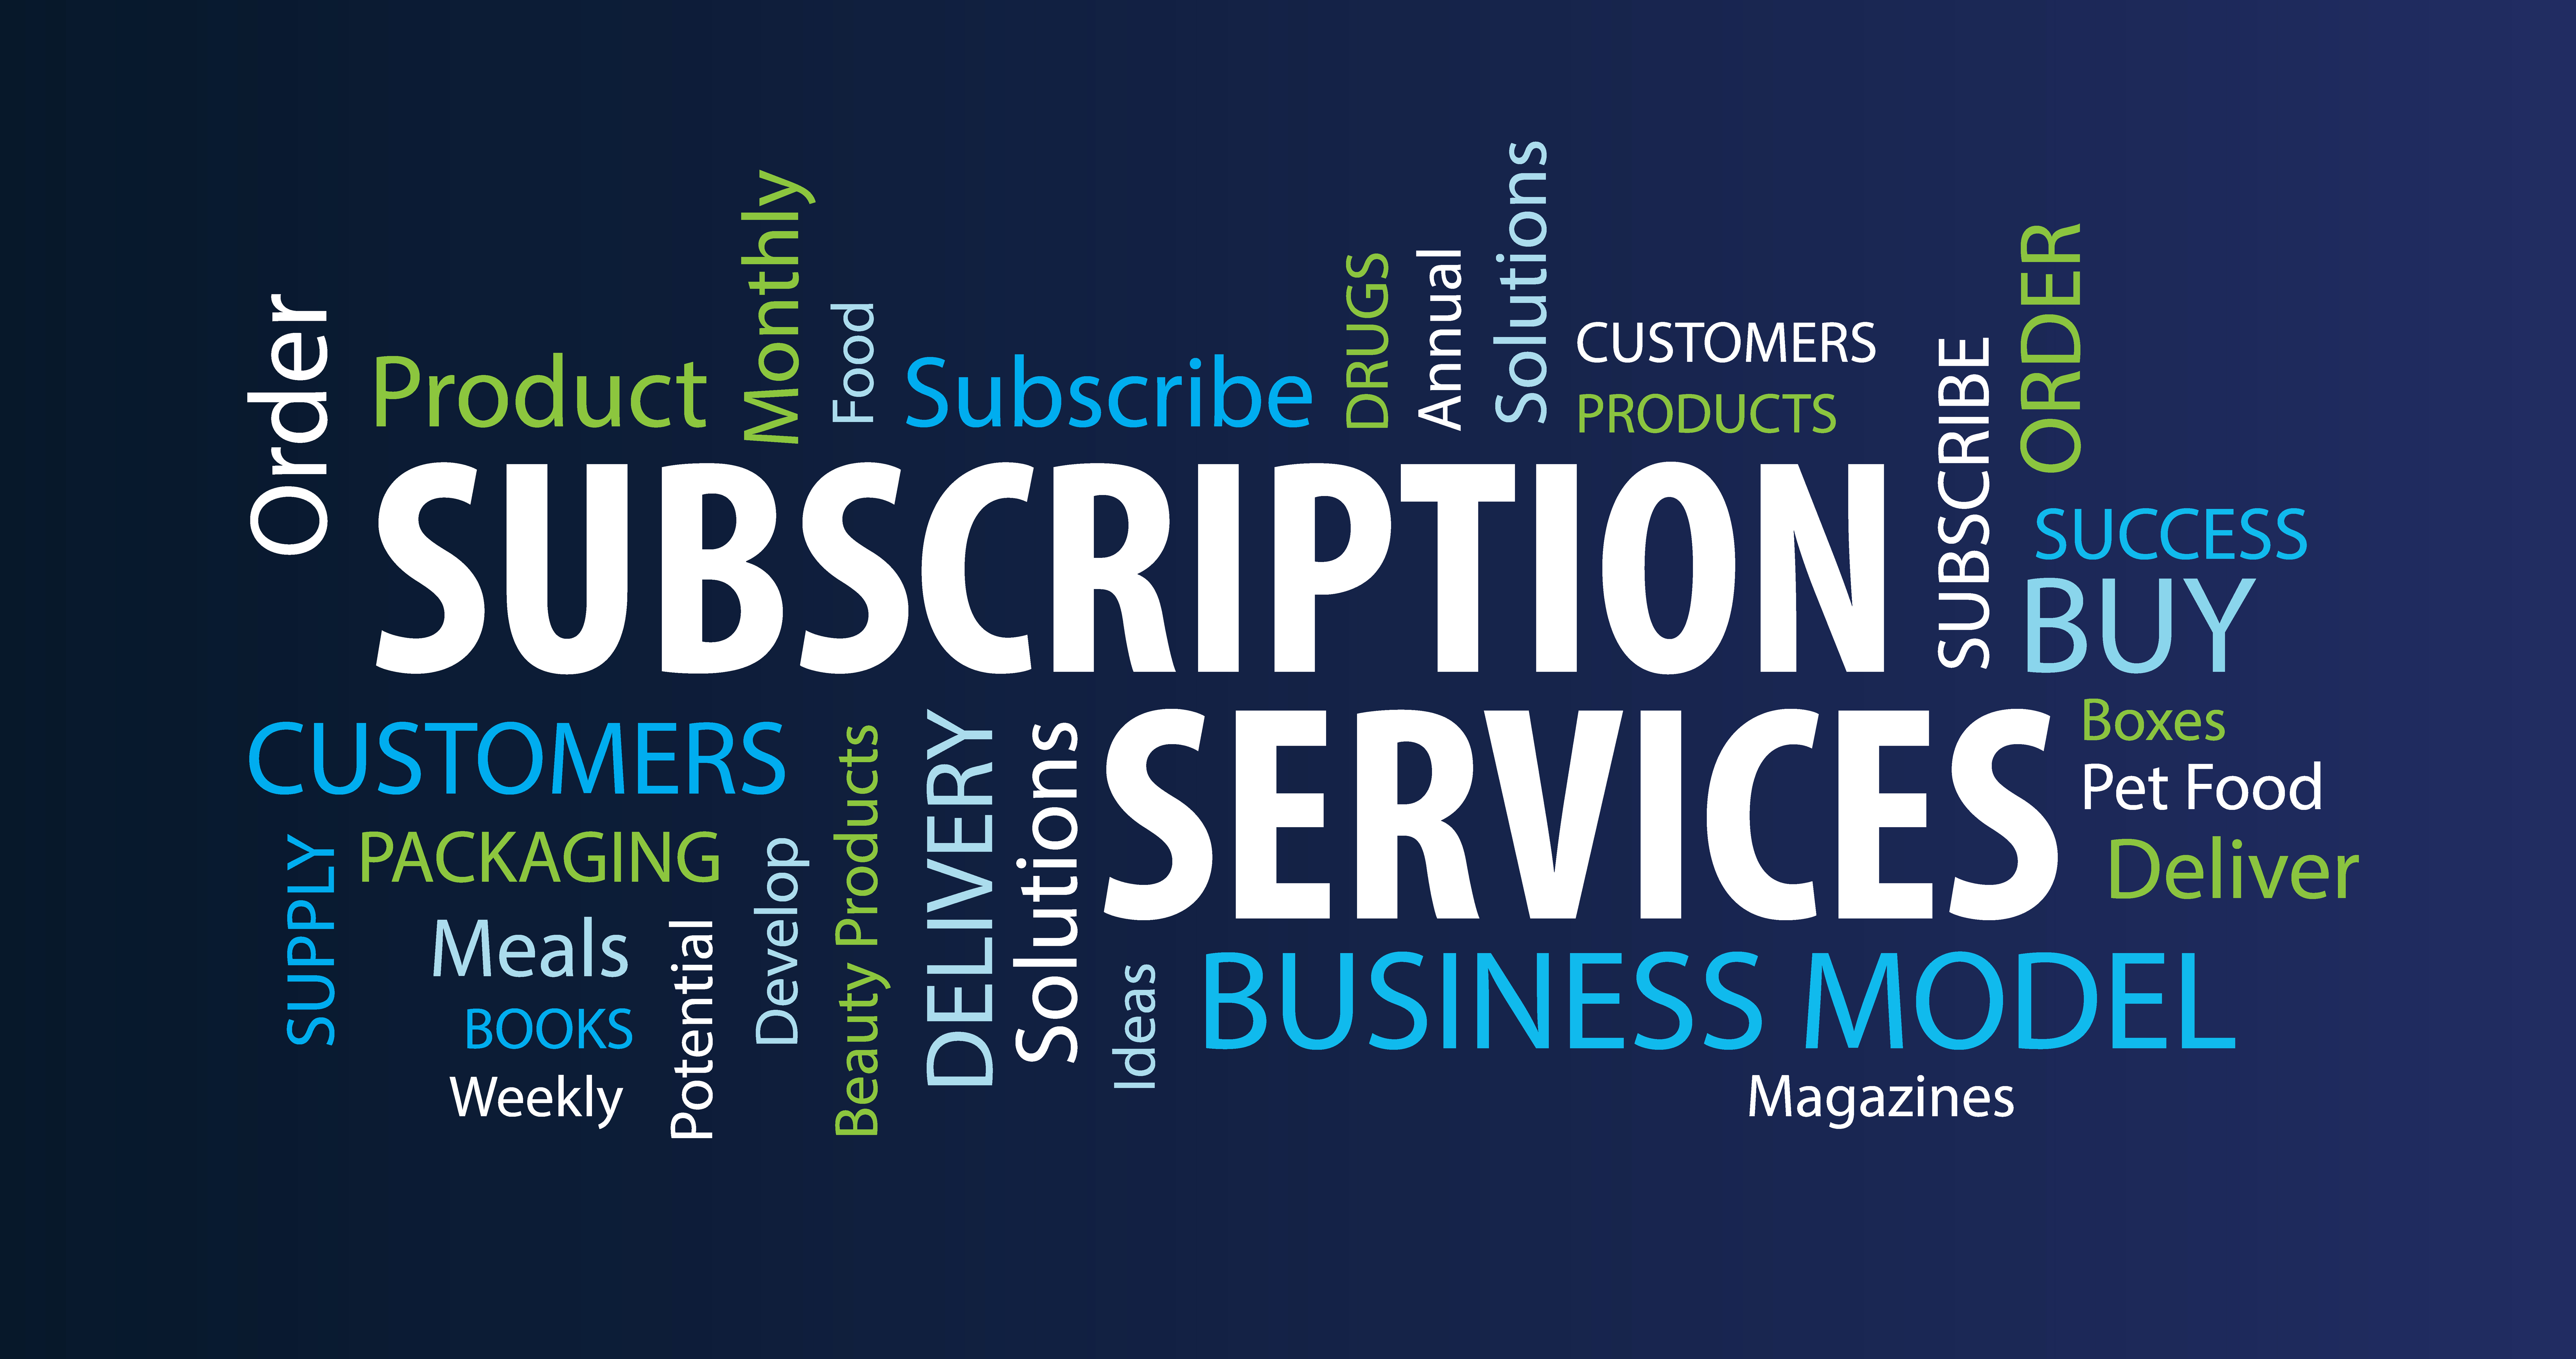 What Percentage of Consumers Pay for Online Subscription Services?